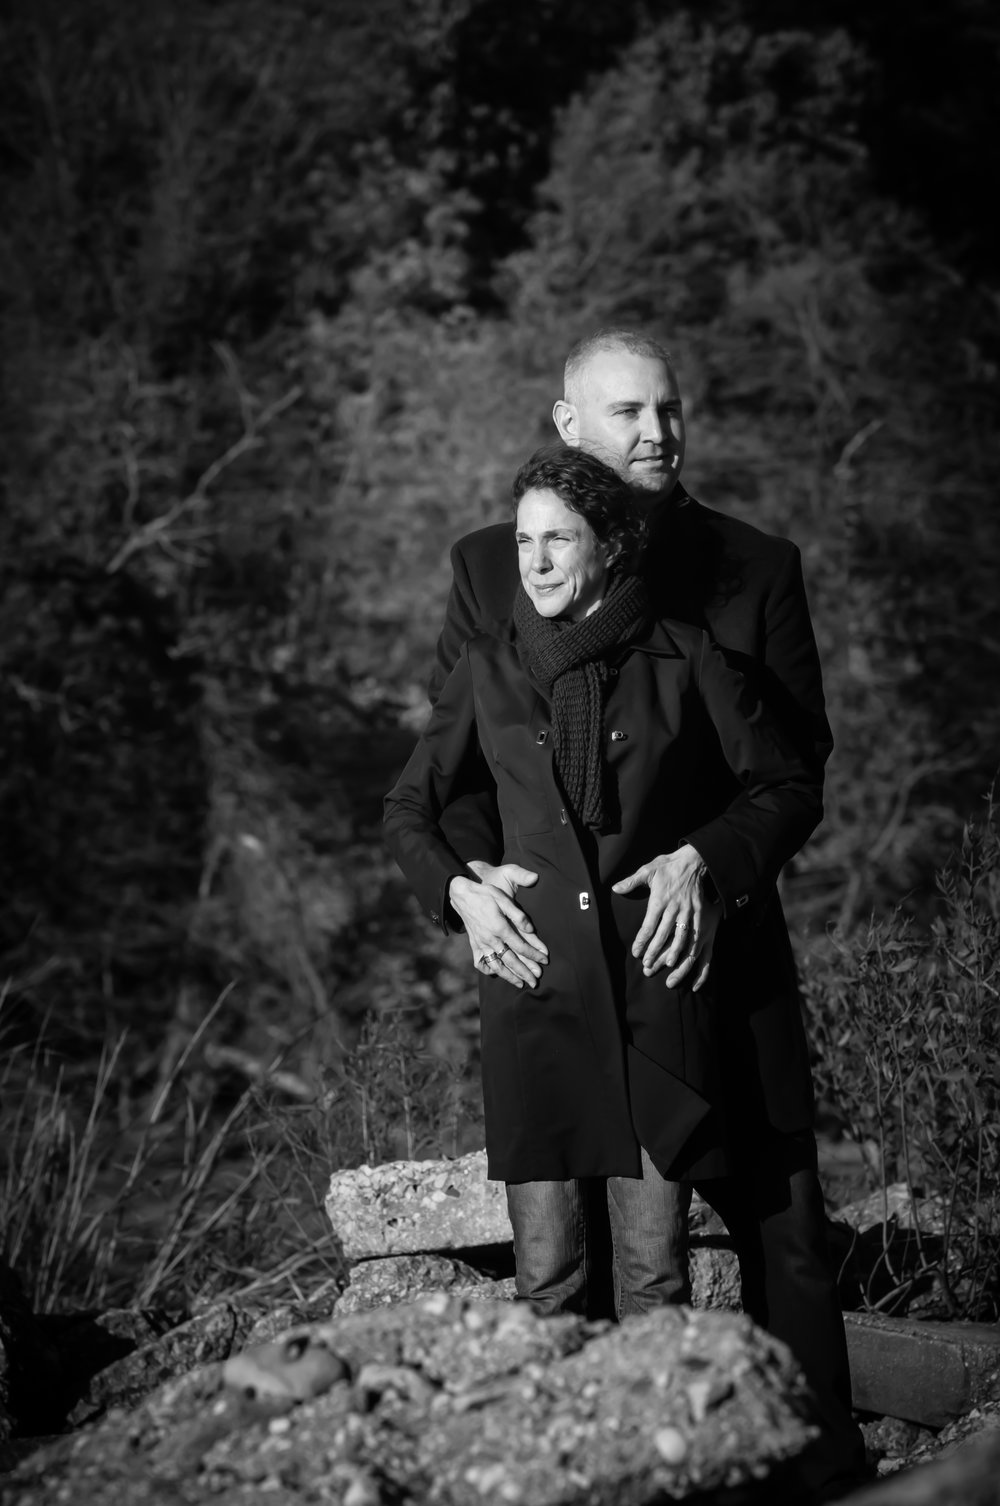 FIneArt_CarrieAnneGonzalez_NYPhotography_CarrieWestonStudios_Portrait_Engagement-5173.jpg